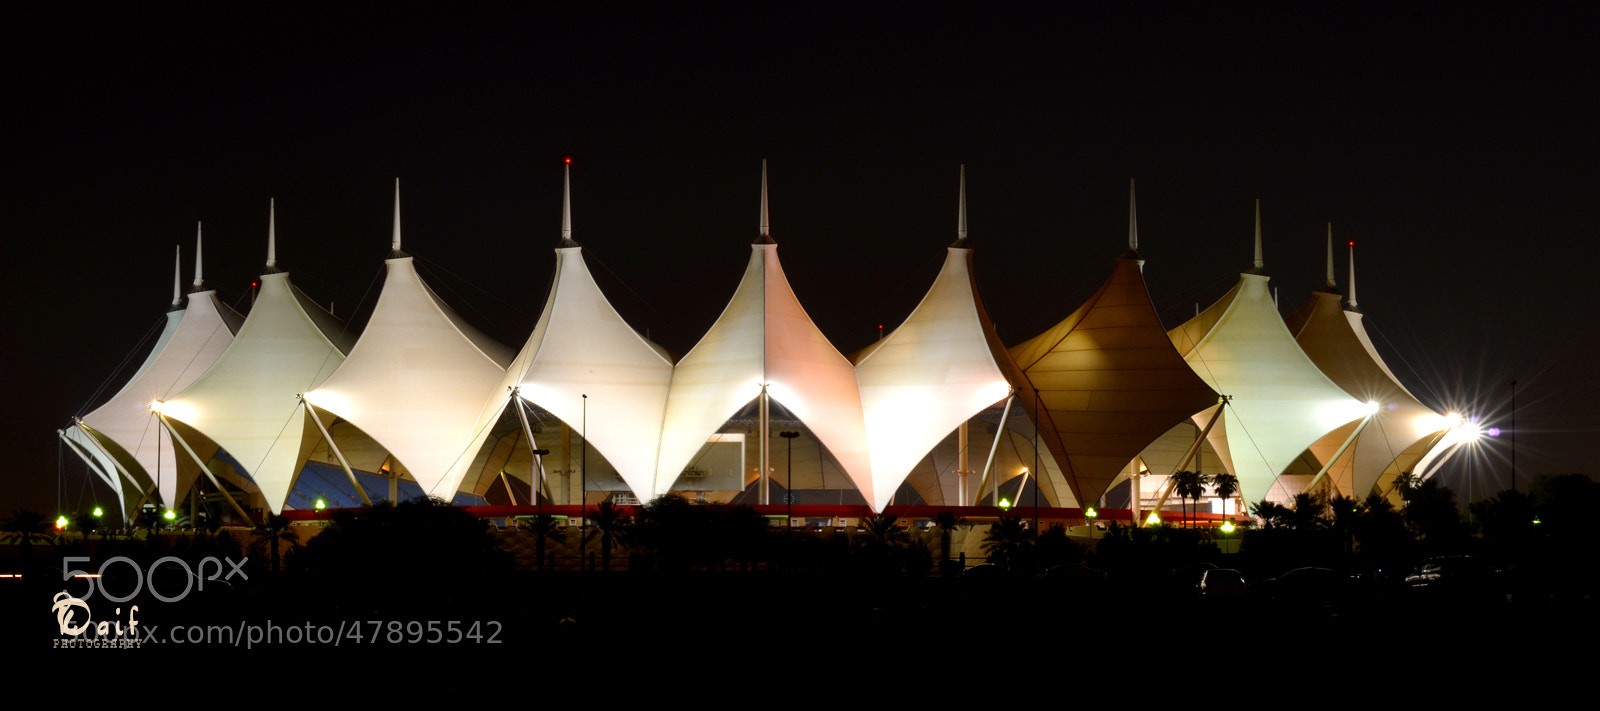 Photograph KING FAHAD STADIUM by Daifallah Mansour on 500px